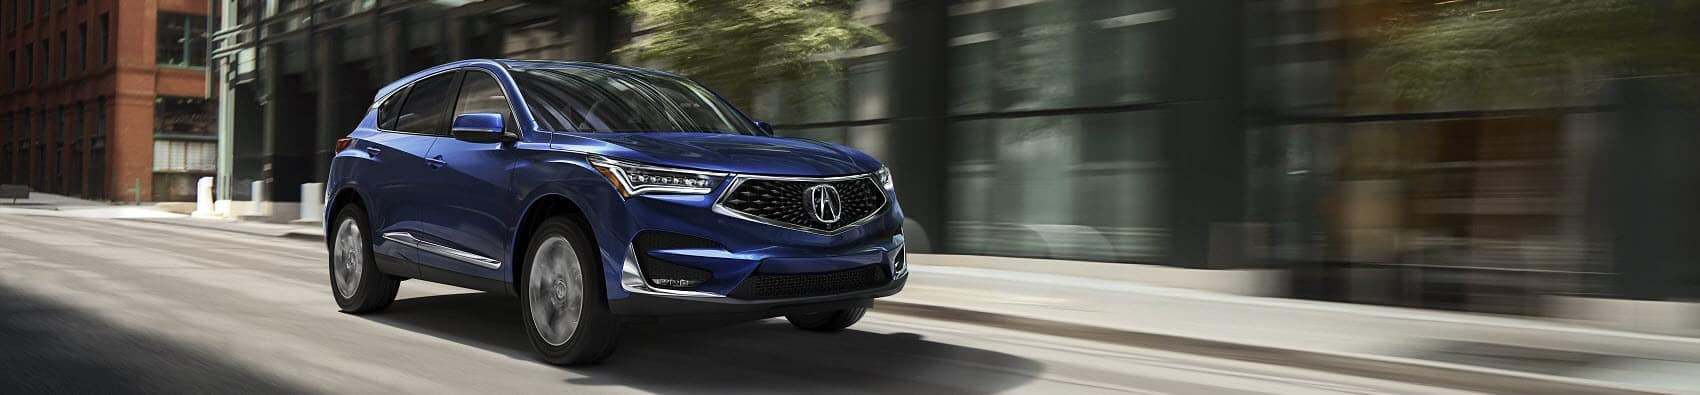 Acura RDX in Blue